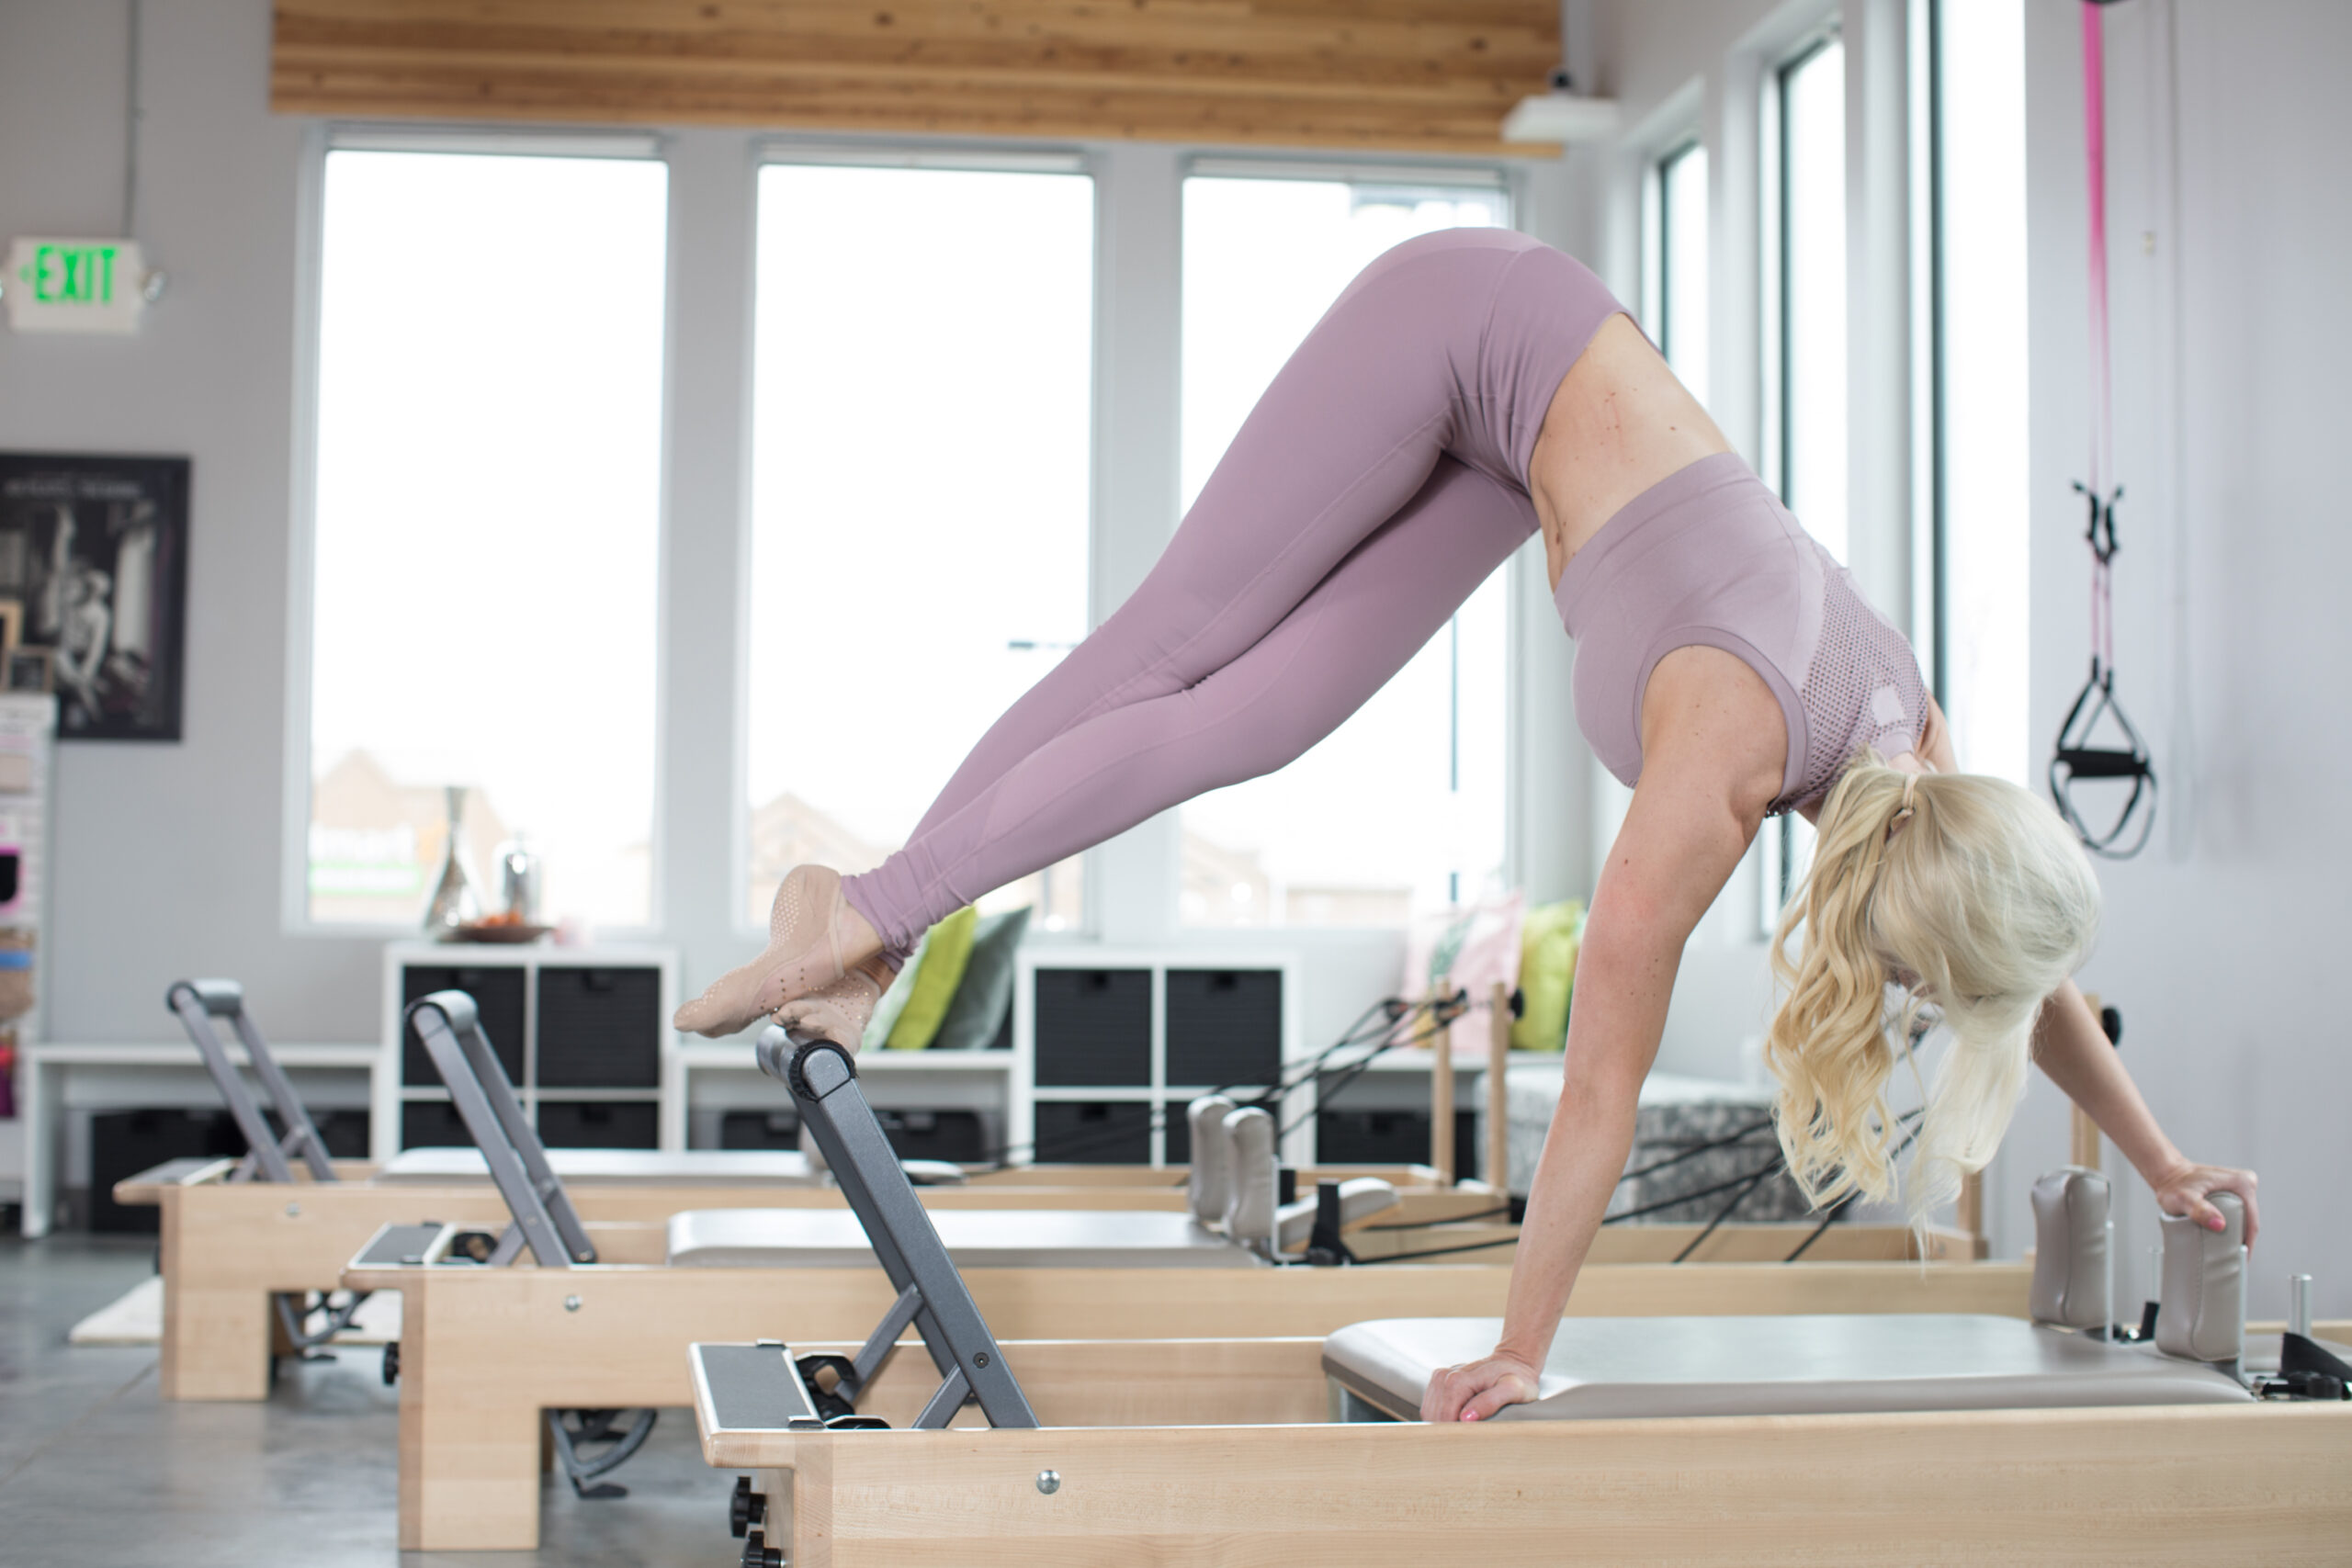 The Dynamic Pilates TV Guide To Buying a Reformer